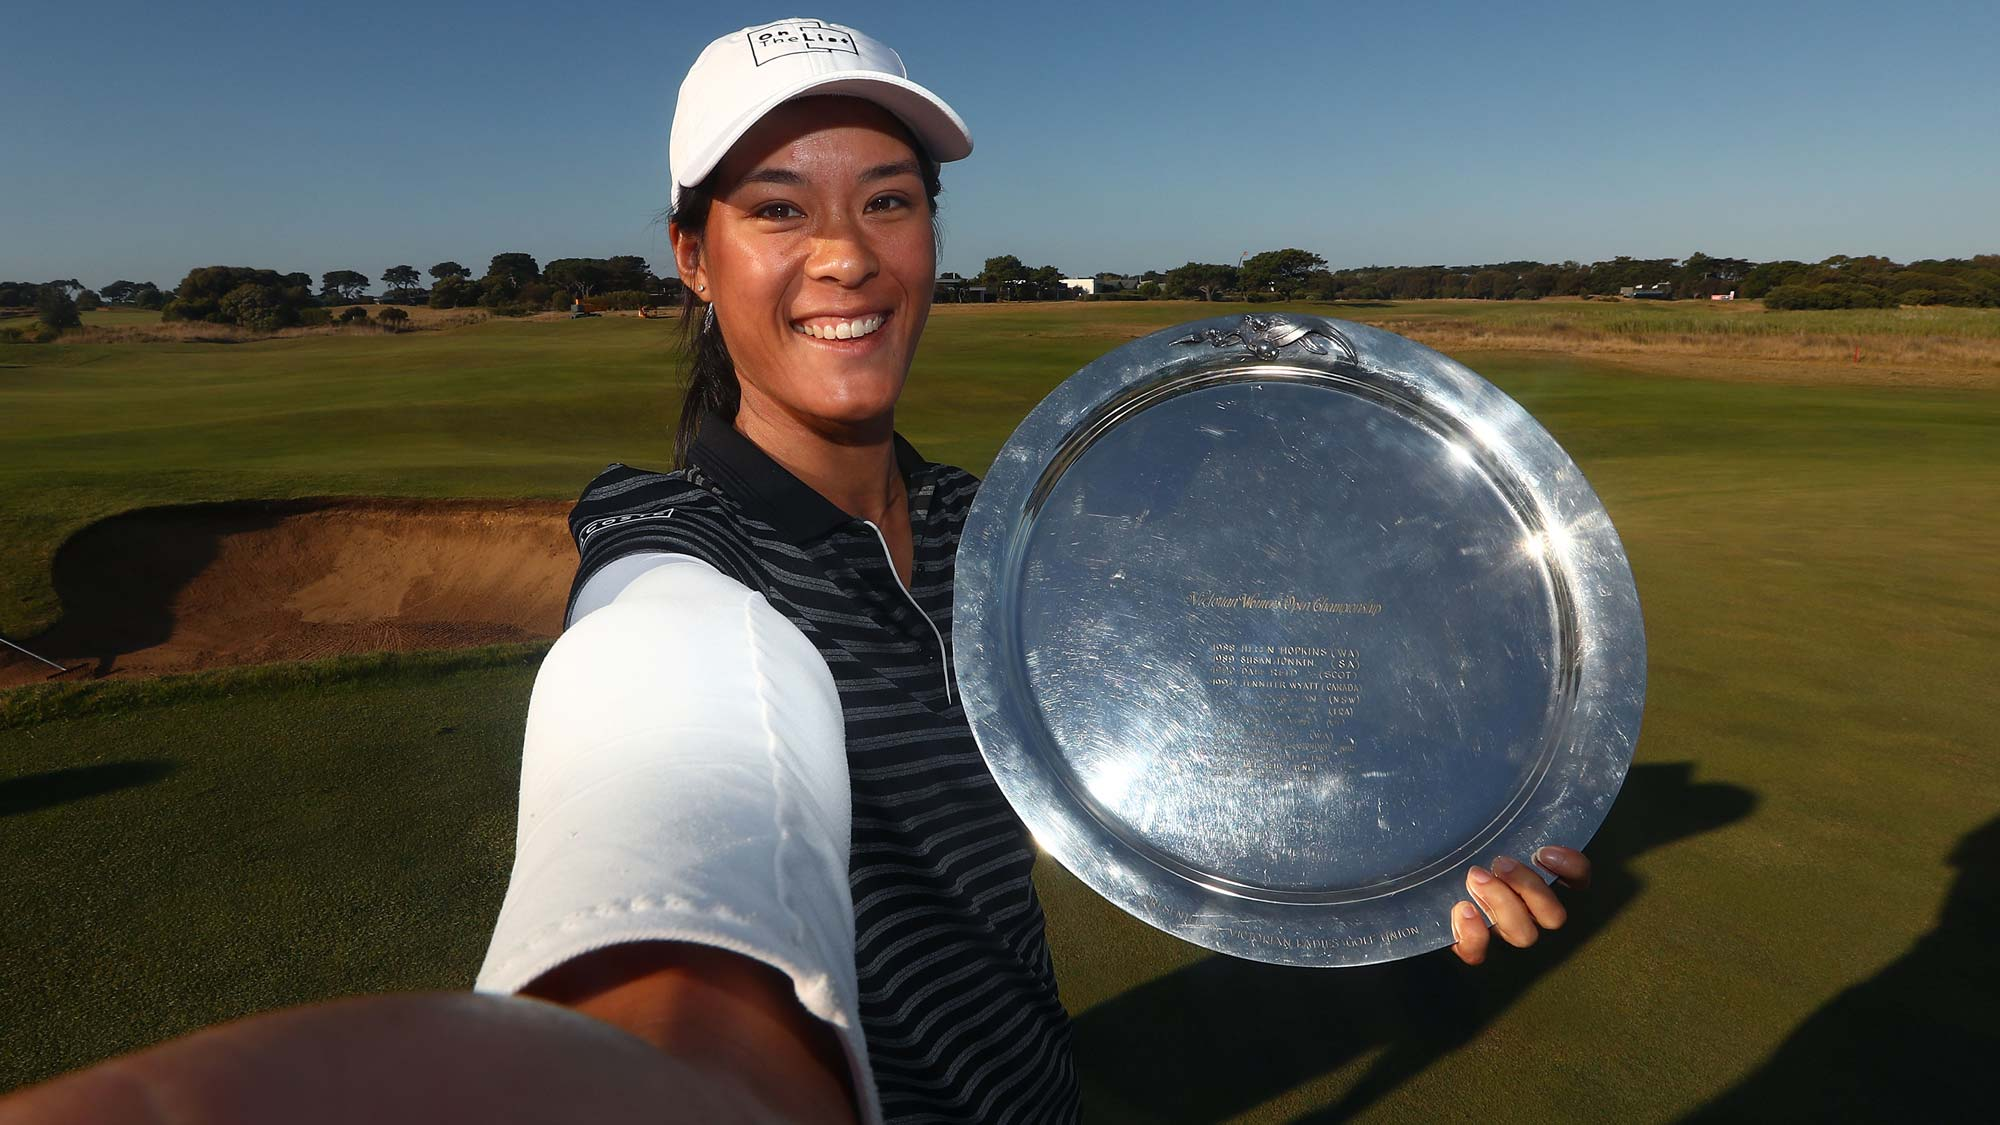 Celine Boutier has her #BagsPacked for the 2020 Diamond Resorts Tournament of Champions presented by IOA after her victory at the ISPS Handa Vic Open